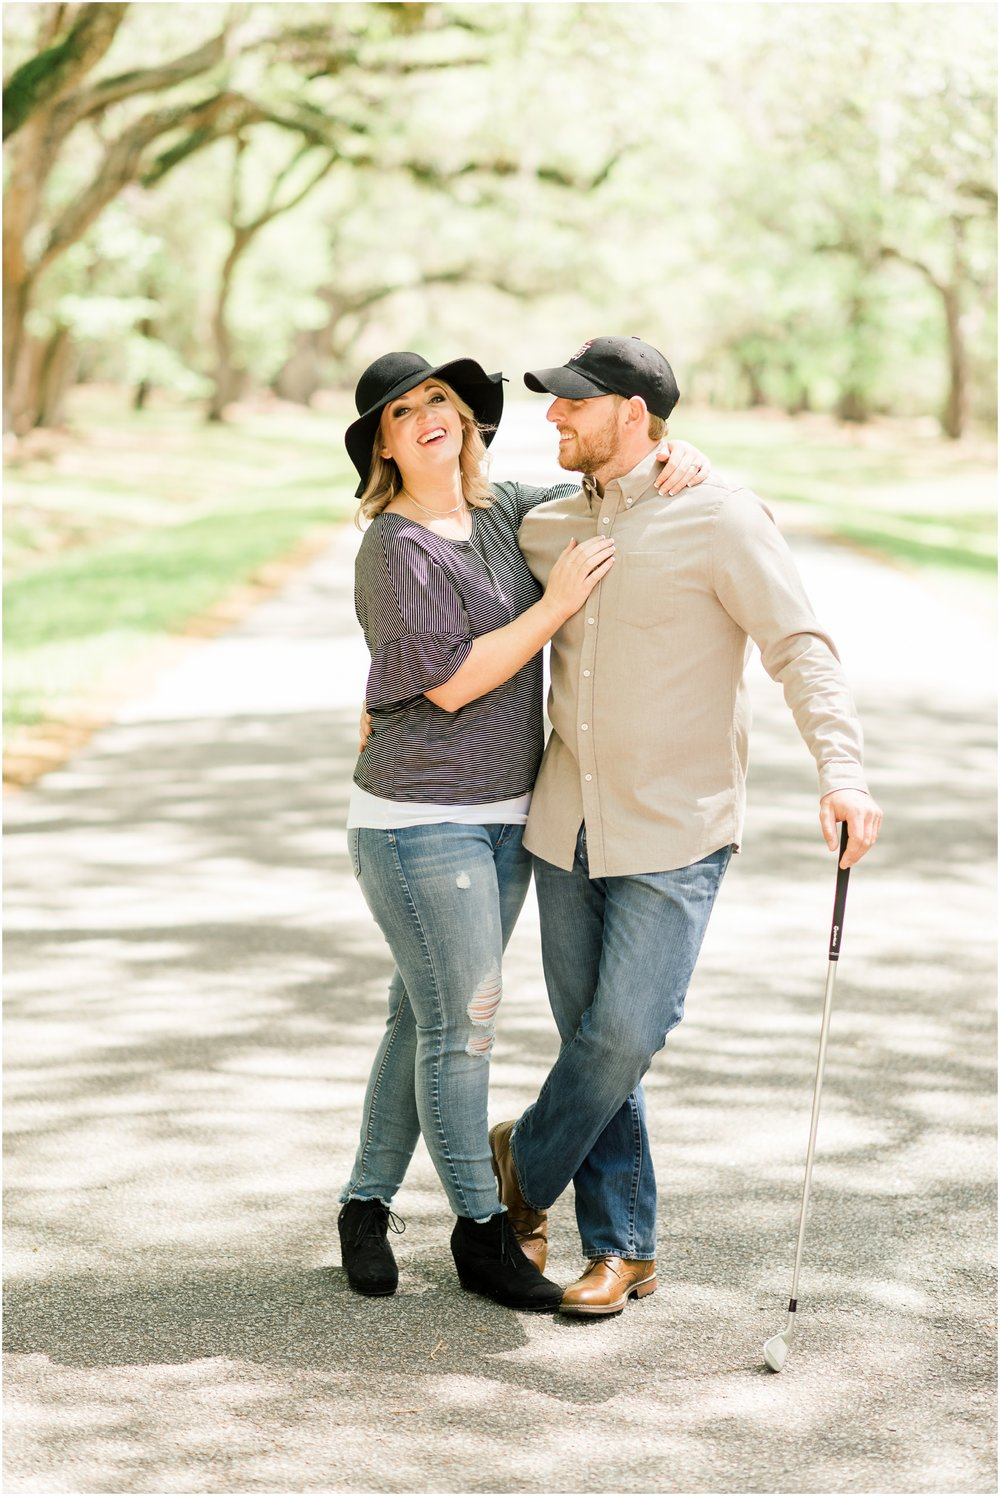 Mepkin-Abbey-Moncks-Corner-South-Carolina-Engagement-Session-Photos_0028.jpg